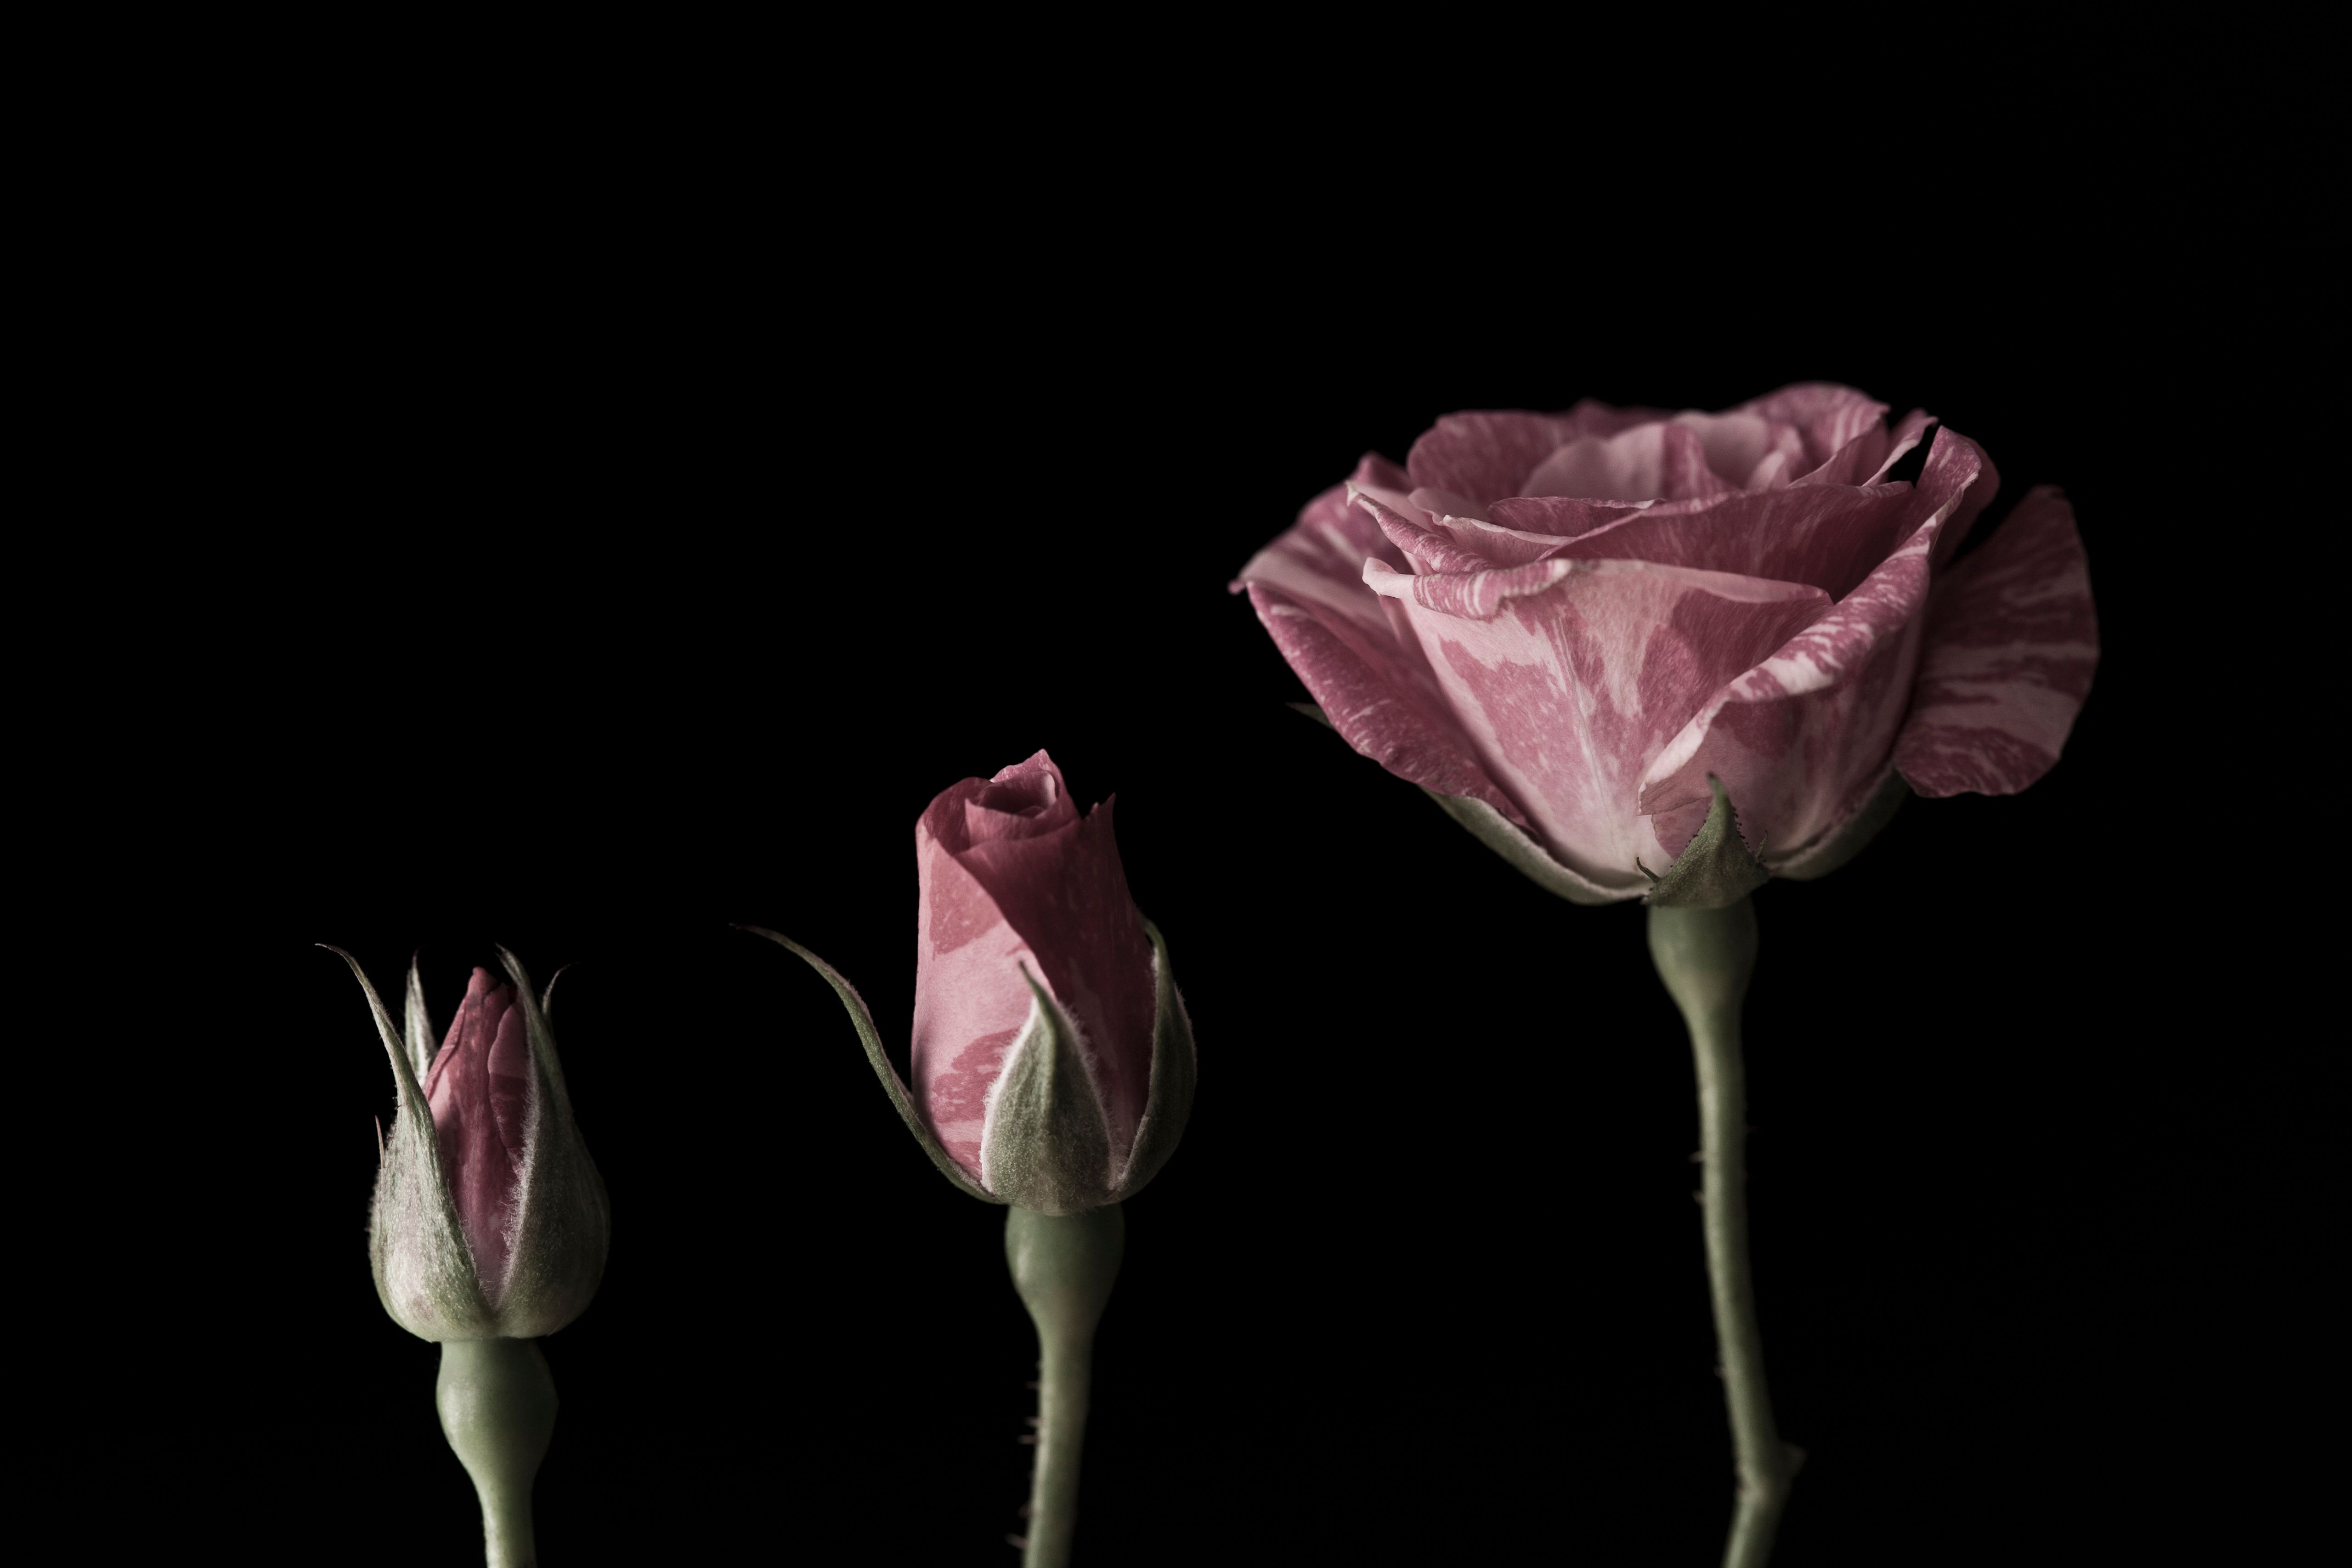 Stages of a rose blooming from bud to flower